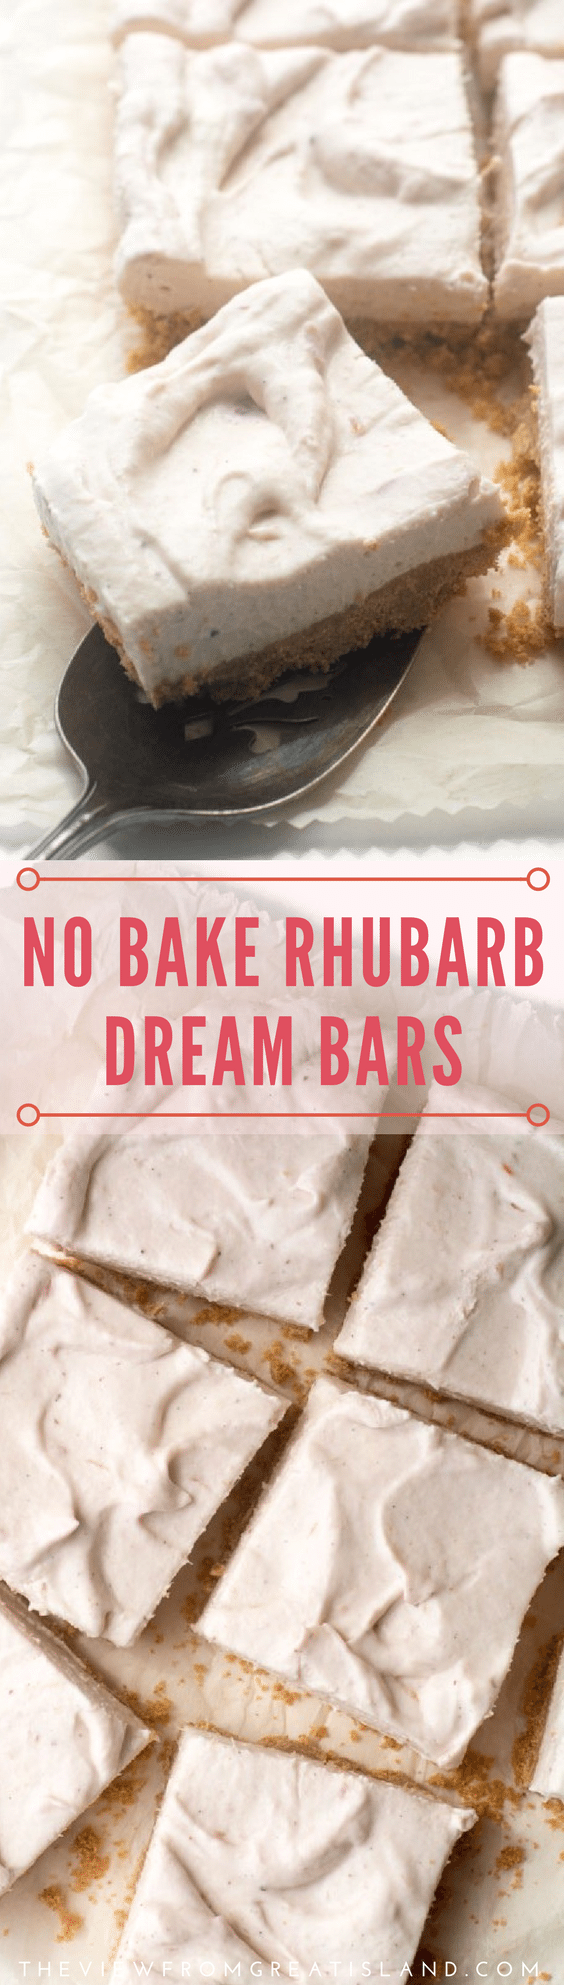 No Bake Rhubarb Dream Bars pin